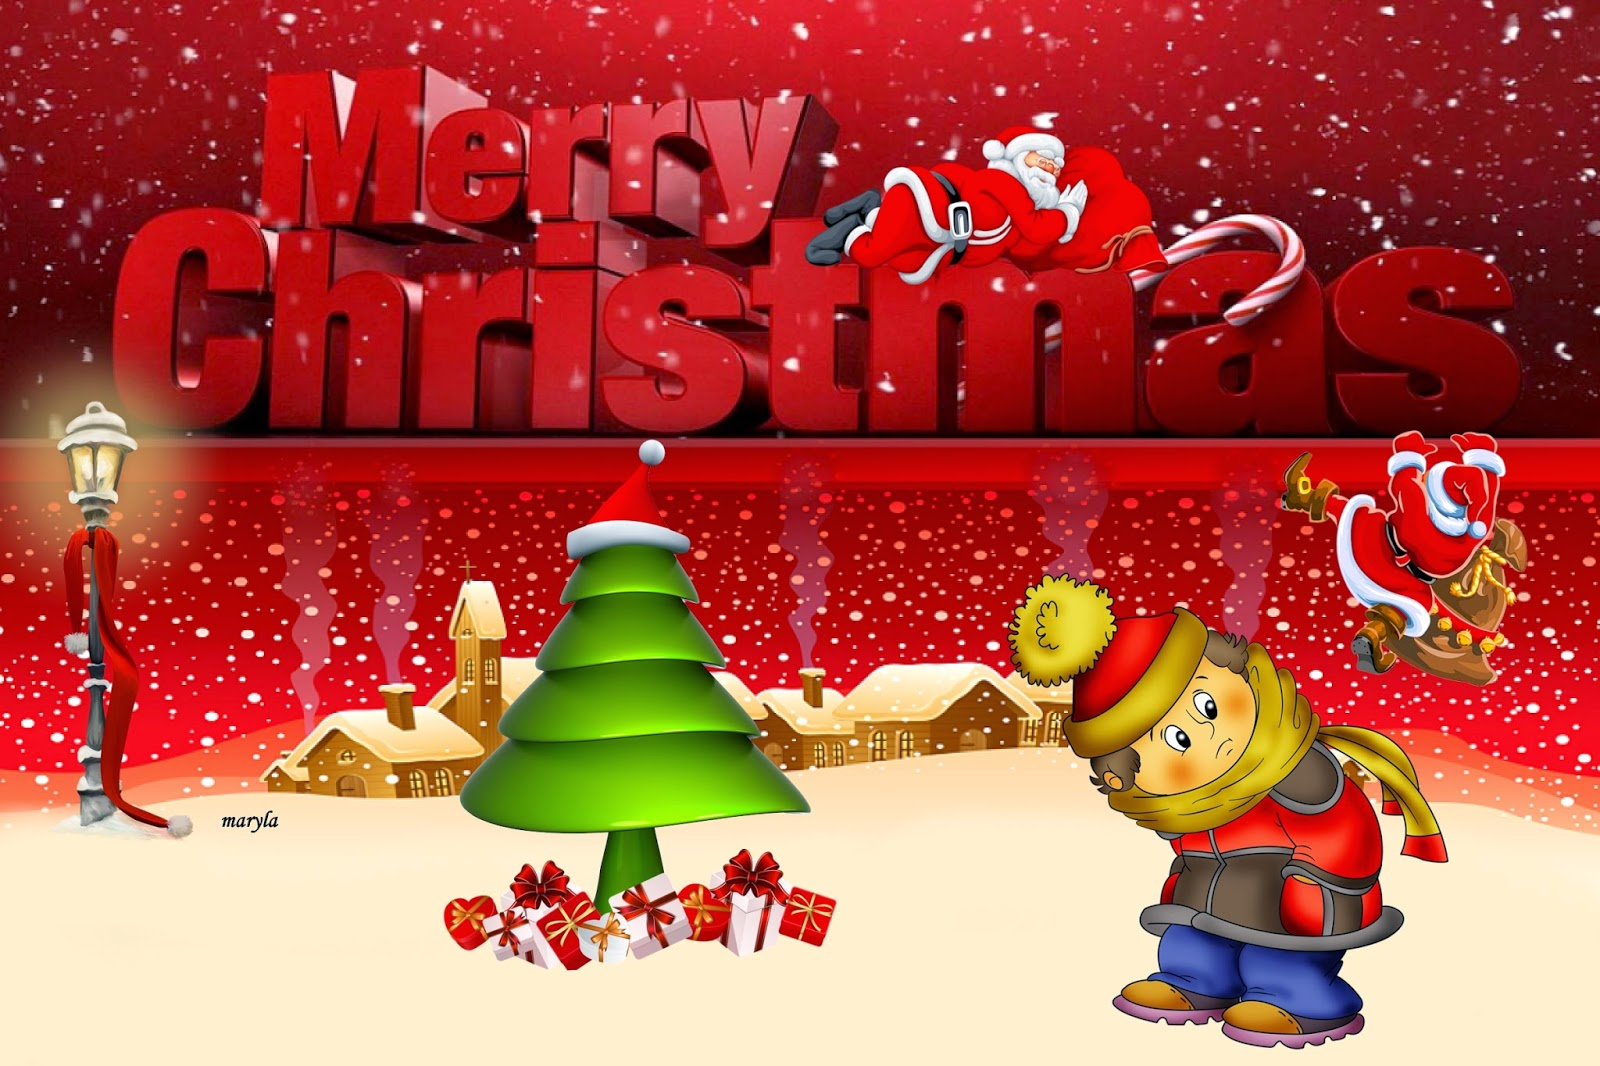 Cute merry christmas background full hd 1080p wallpapers merry christmas 3d text cartoon animation wishes greetings kristyandbryce Choice Image